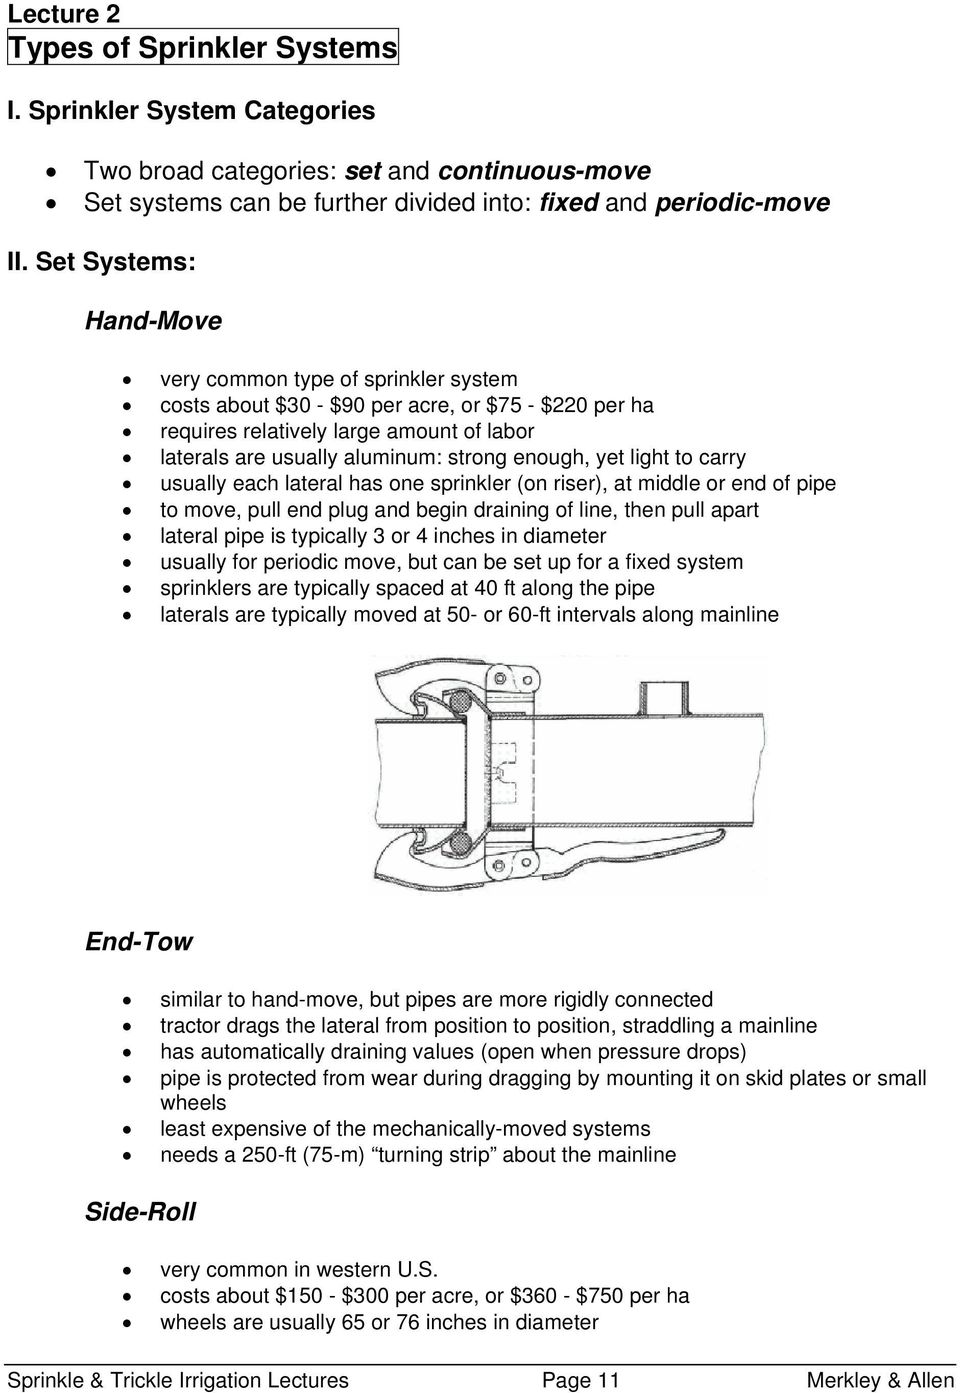 Sprinkle & Trickle Irrigation Lecture Notes - PDF